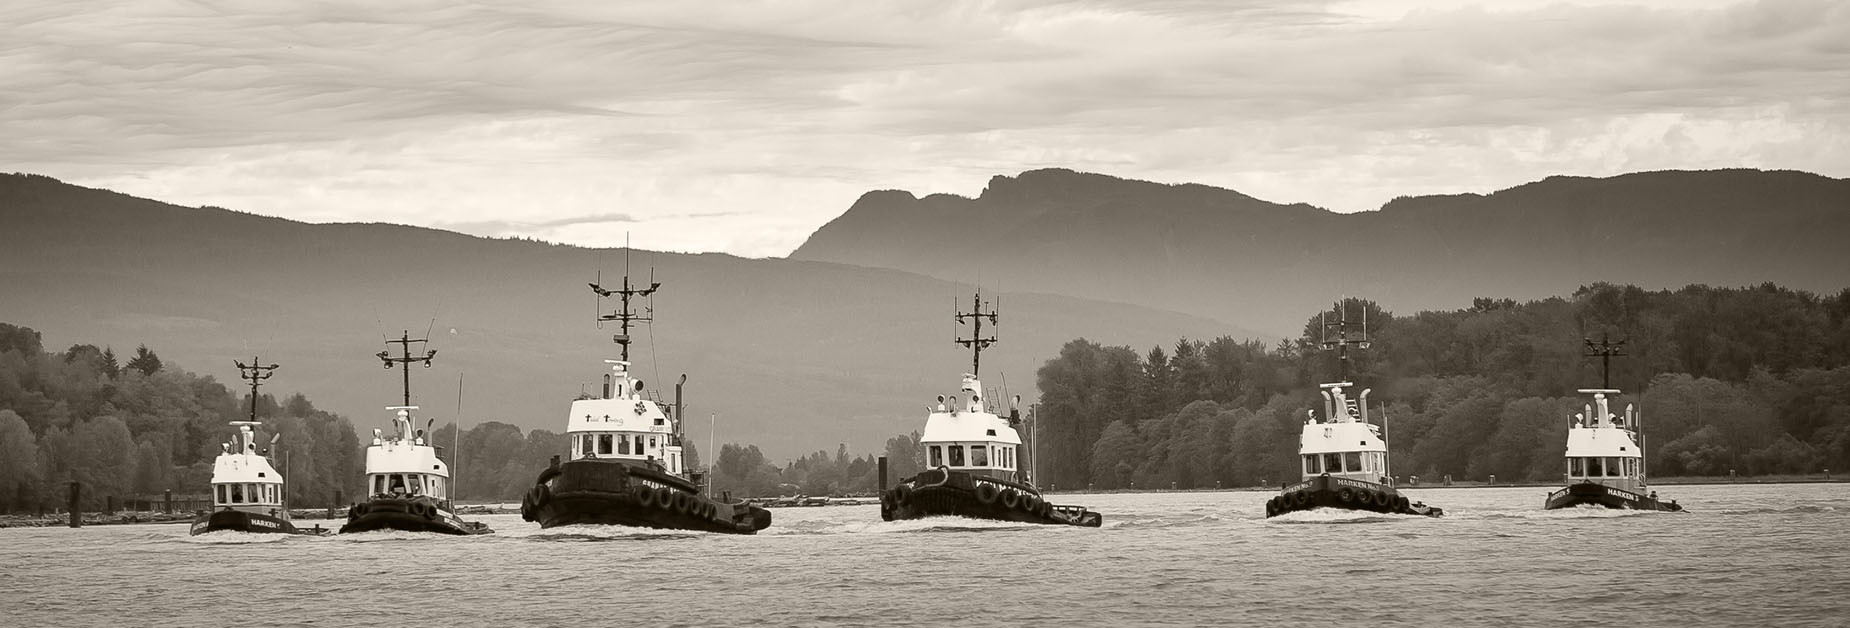 Continuous Tugs